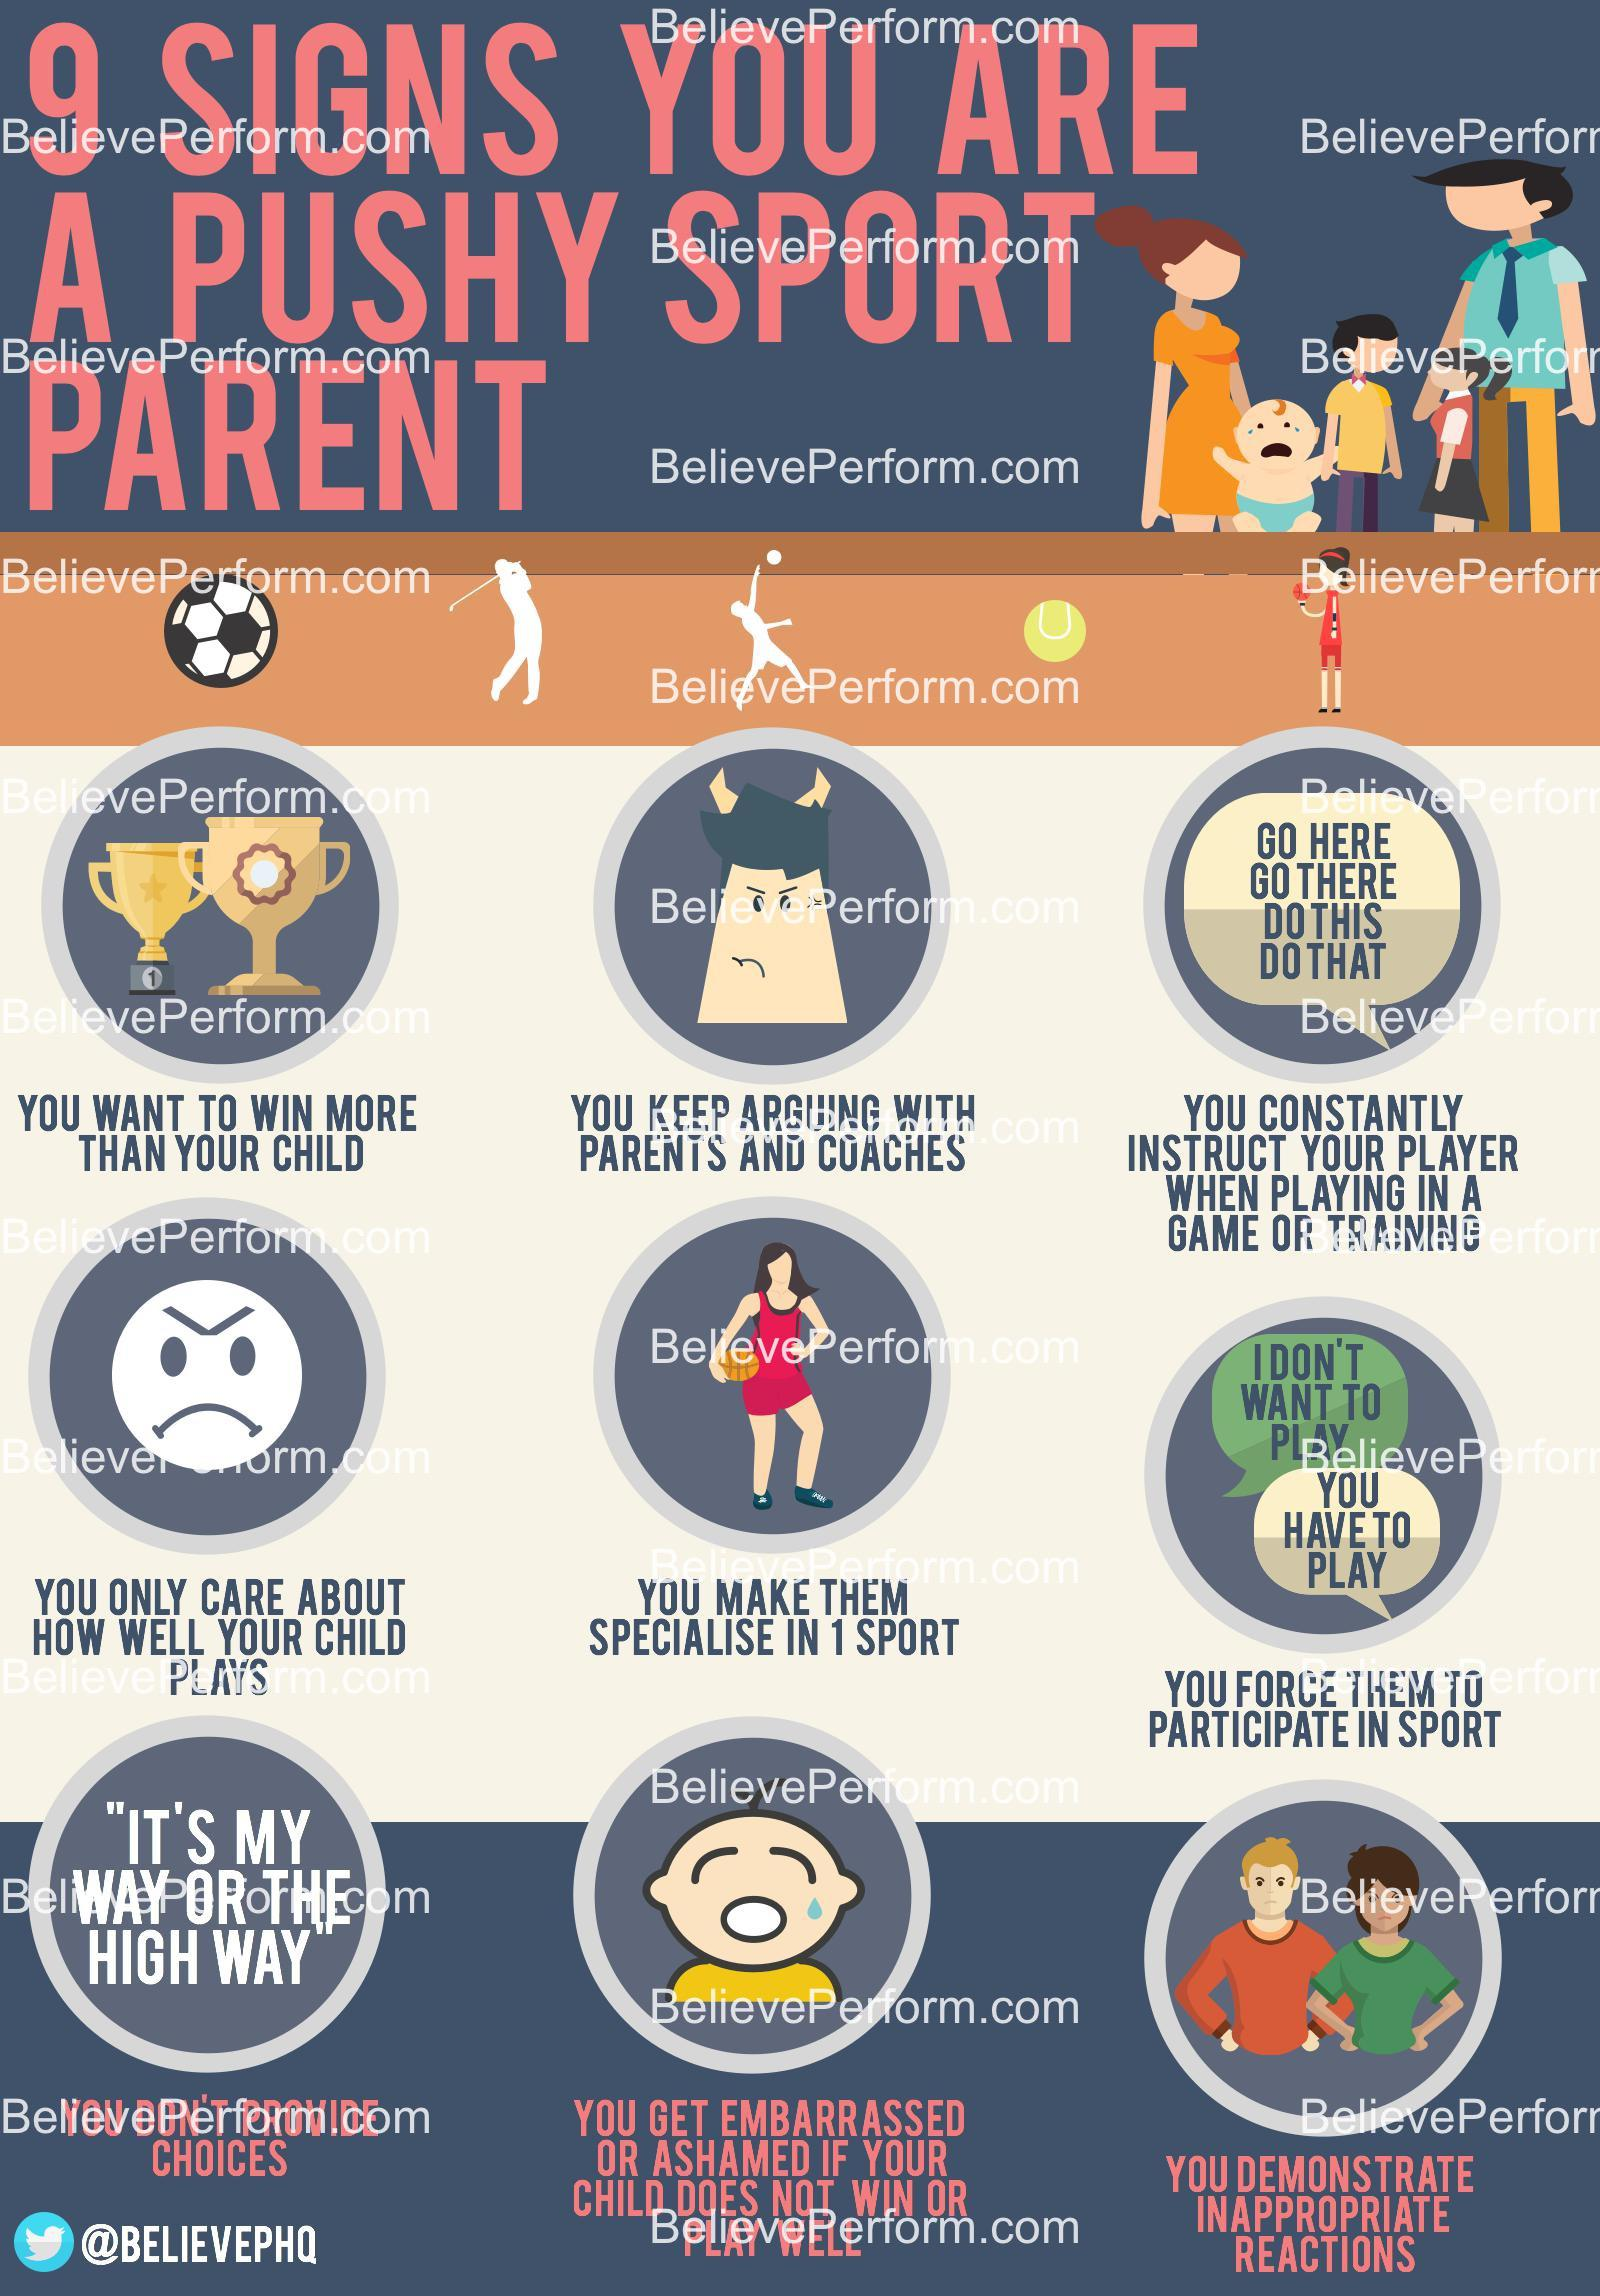 9 signs you are a pushy sport parent